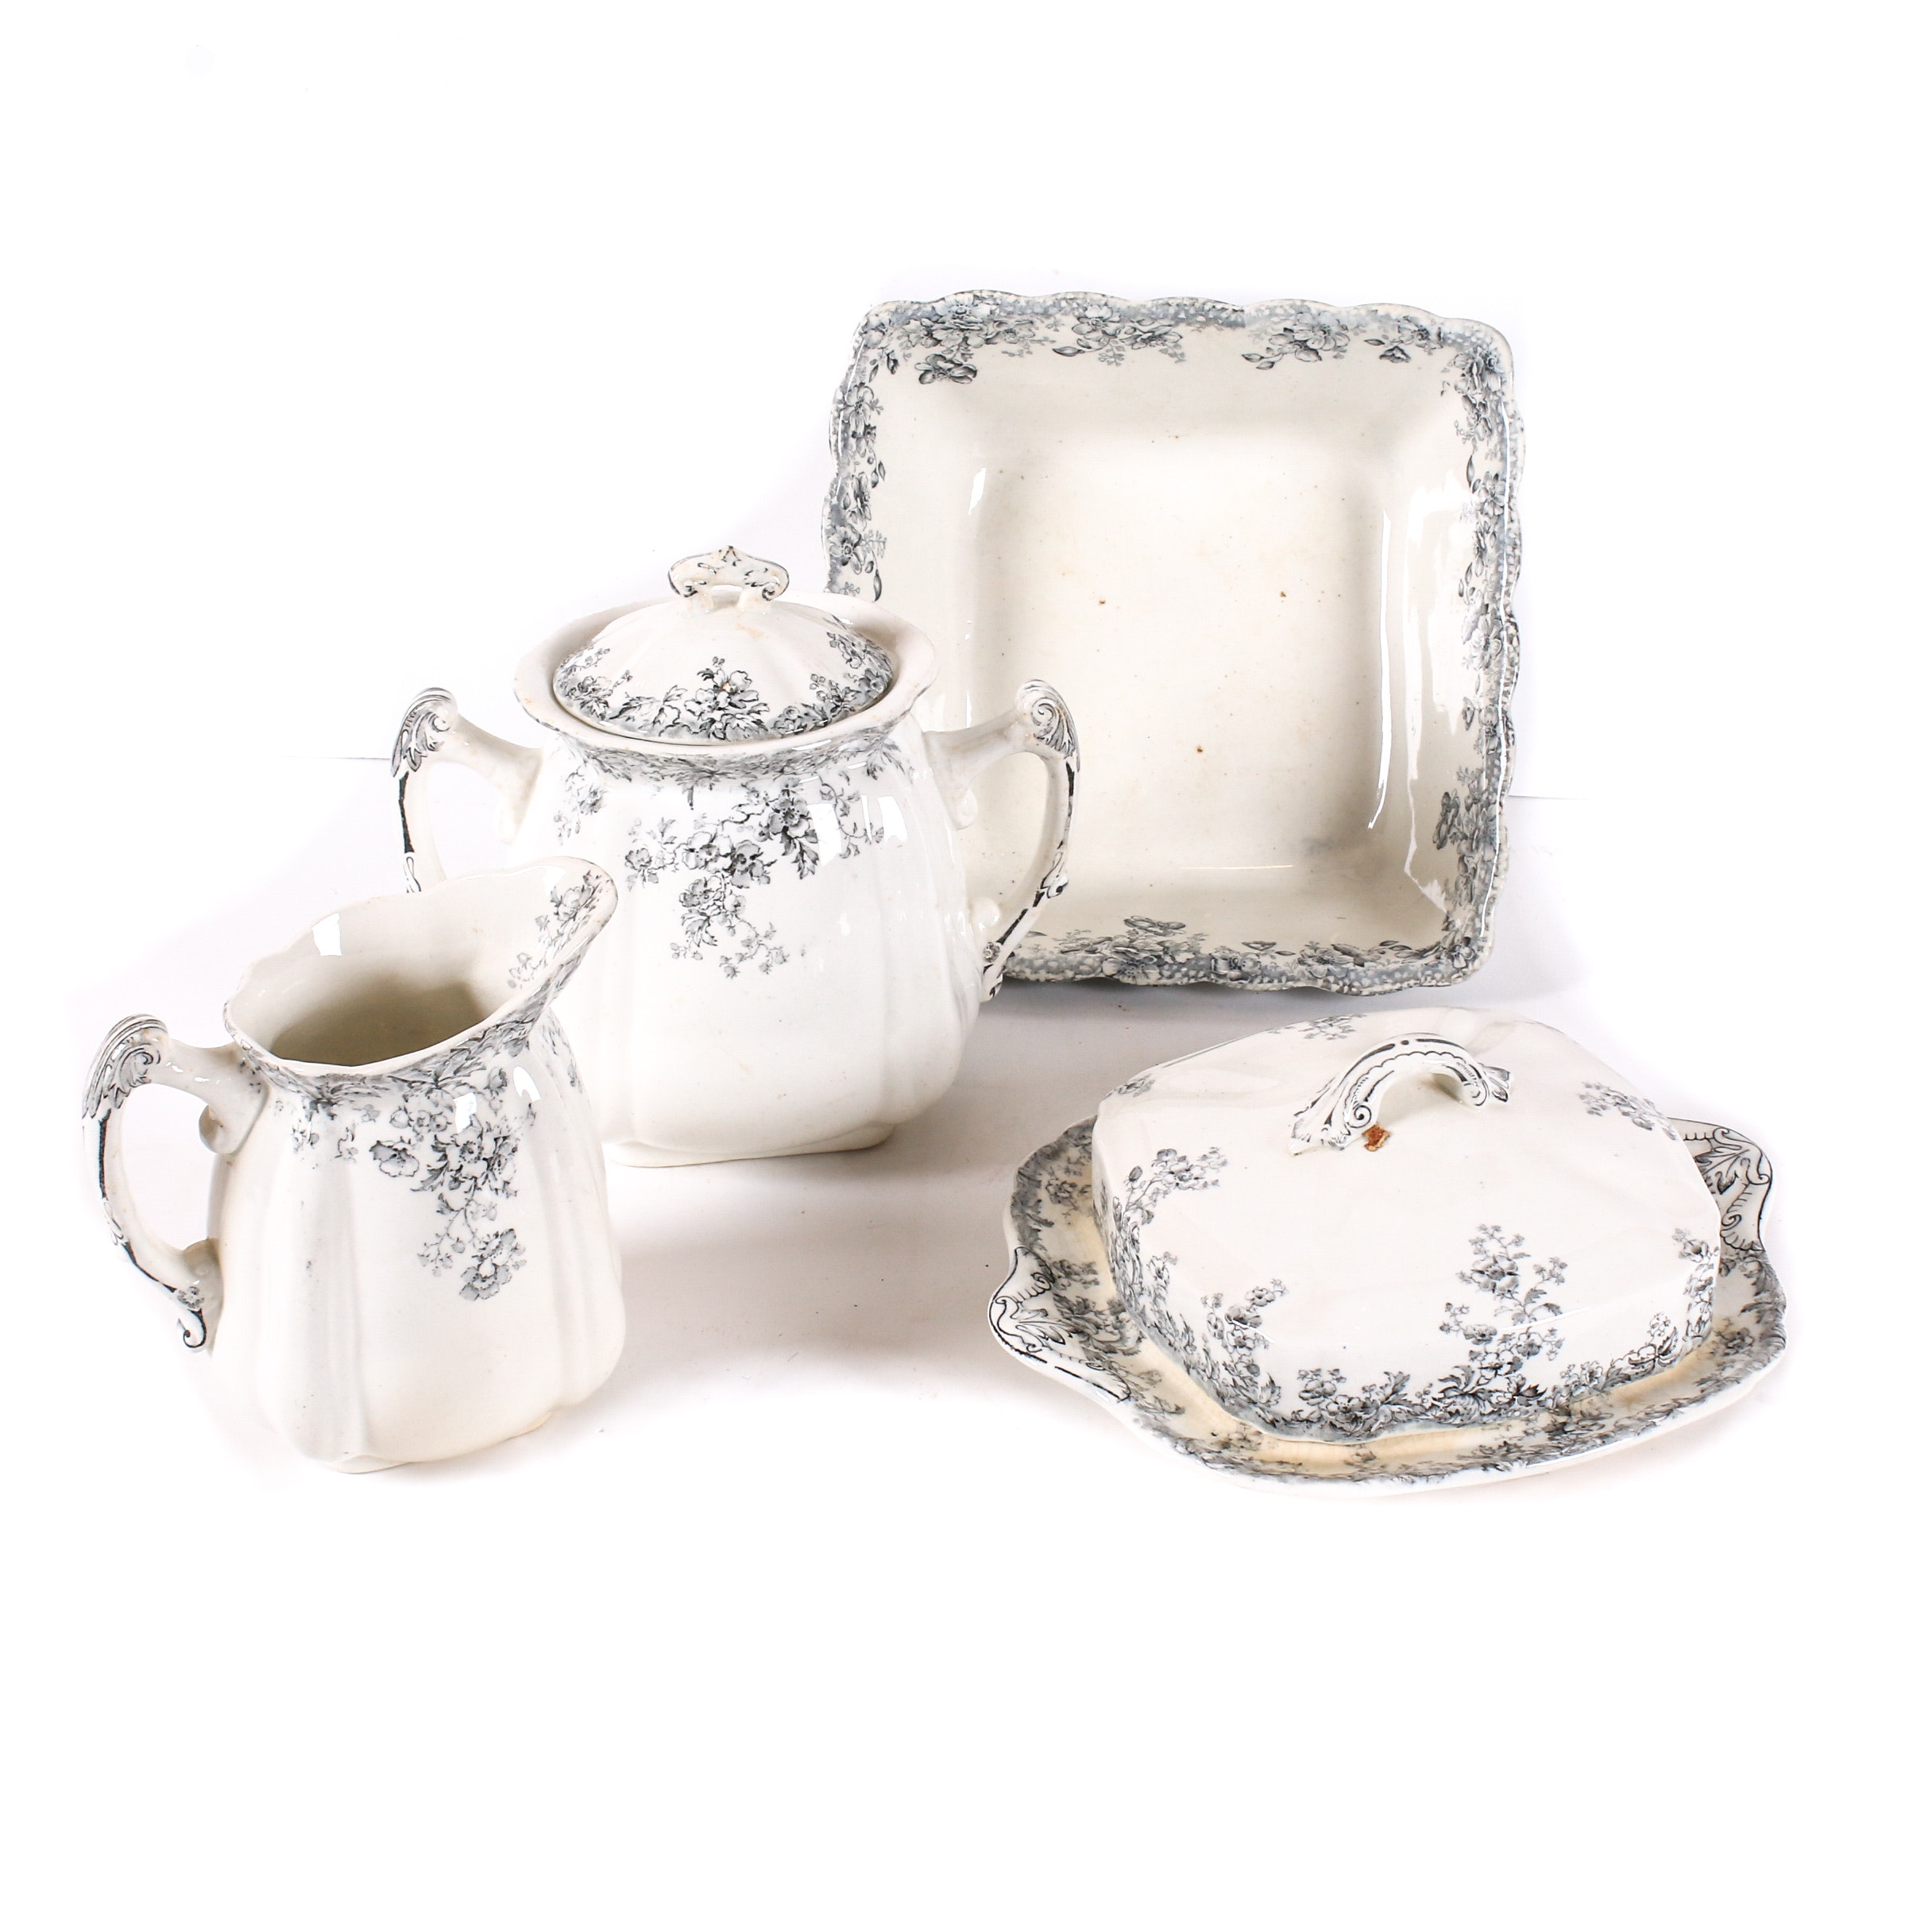 Doulton and E.M. & Co. Porcelain Tableware